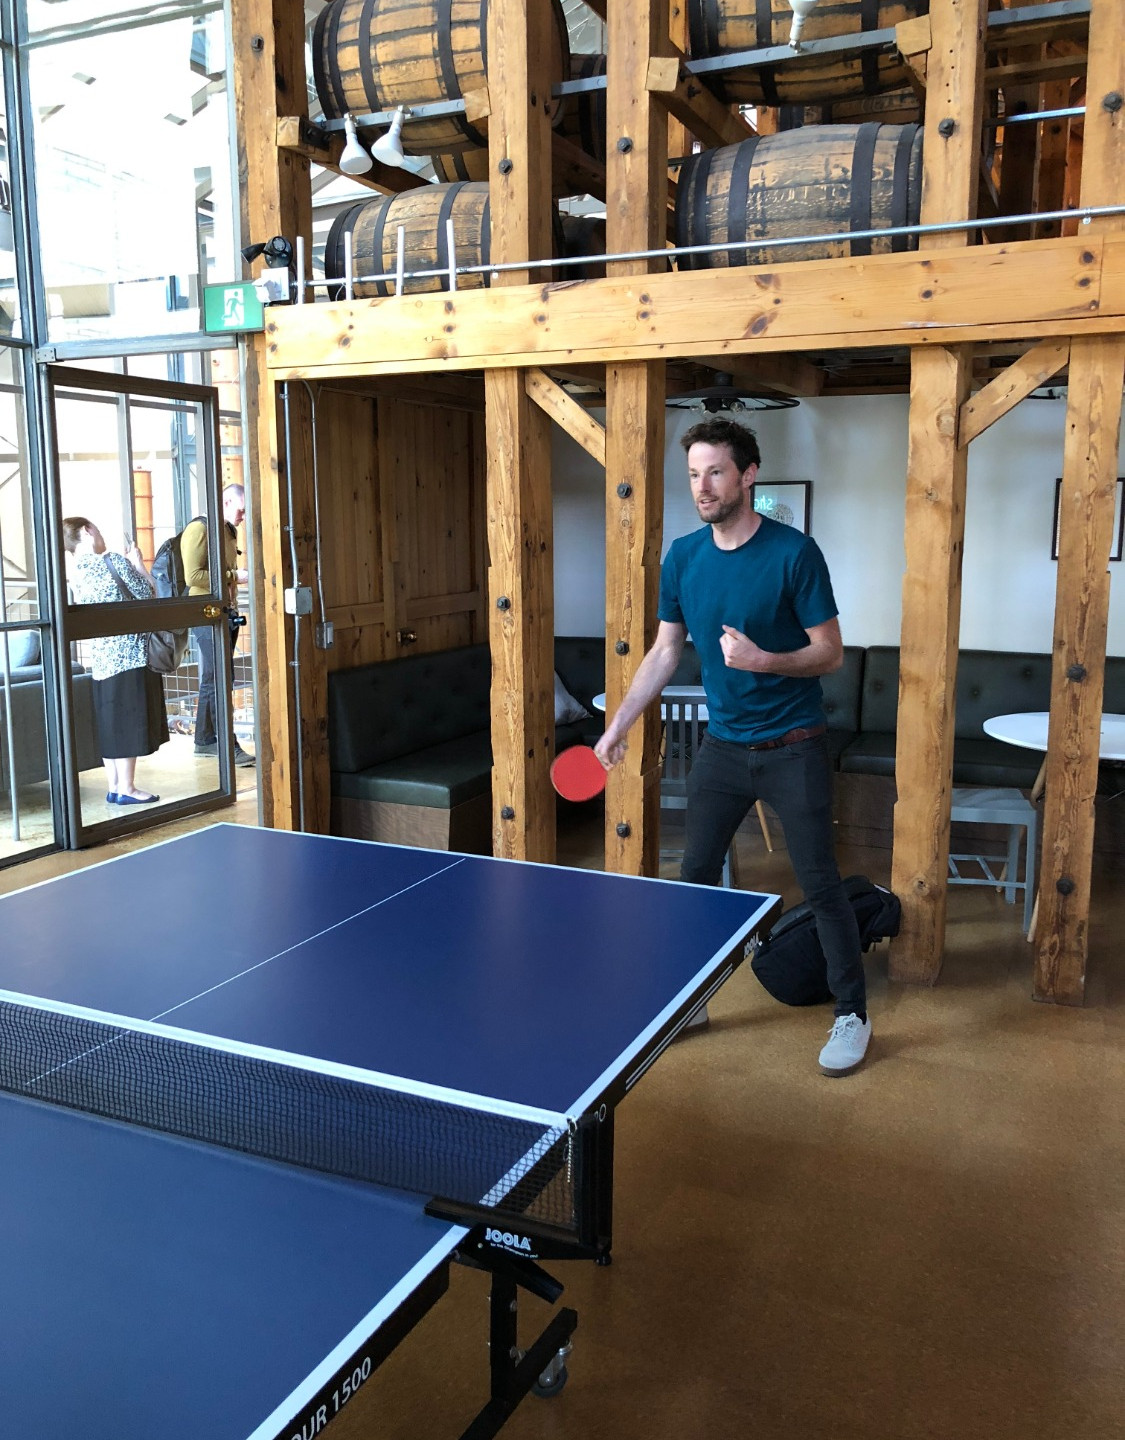 Day 4: Table tennis